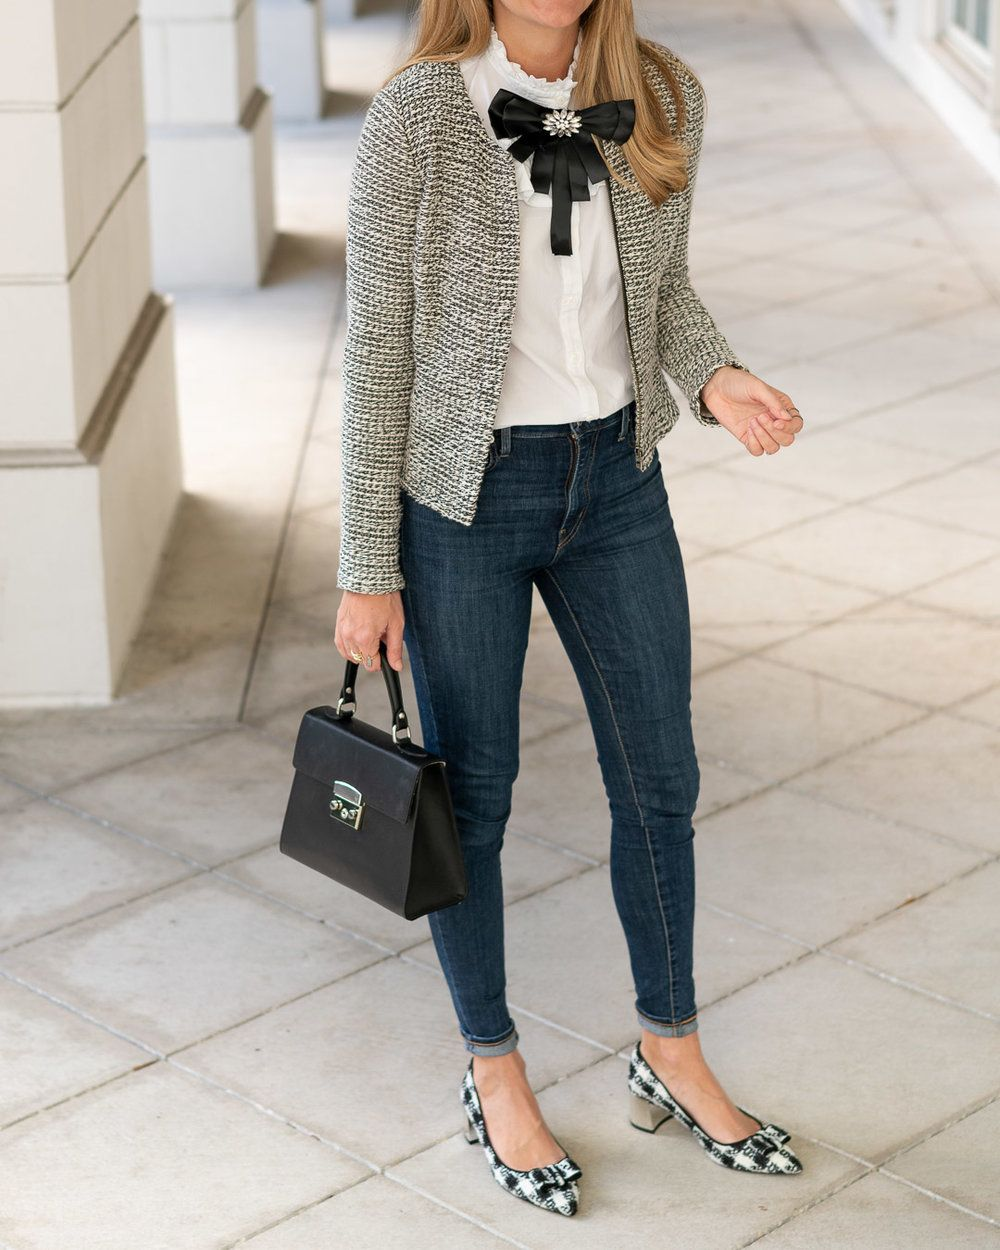 Good 40 Too Everyday Fashion Pinterest Mujeres To True Be Today's SwpPFAqq